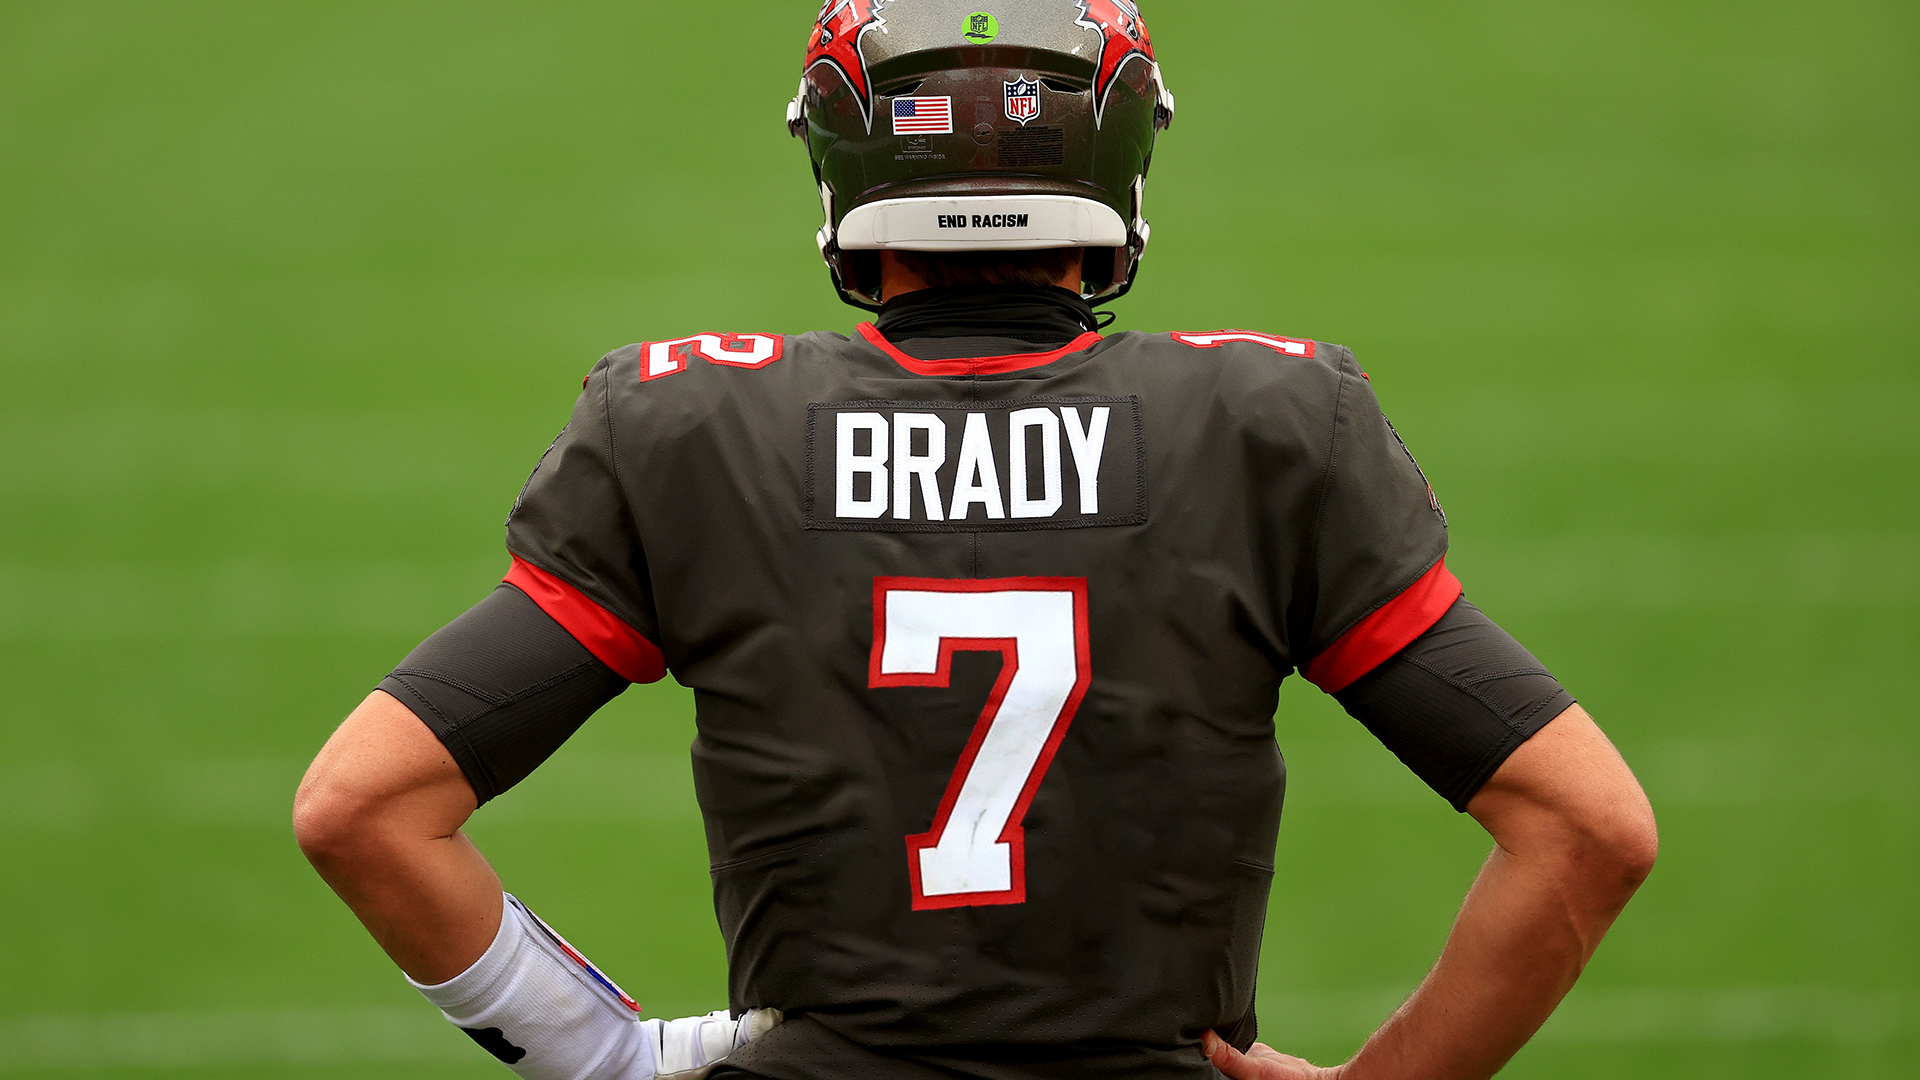 Tom Brady was willing to change his jersey number to 7 with the Bucs - sporting news